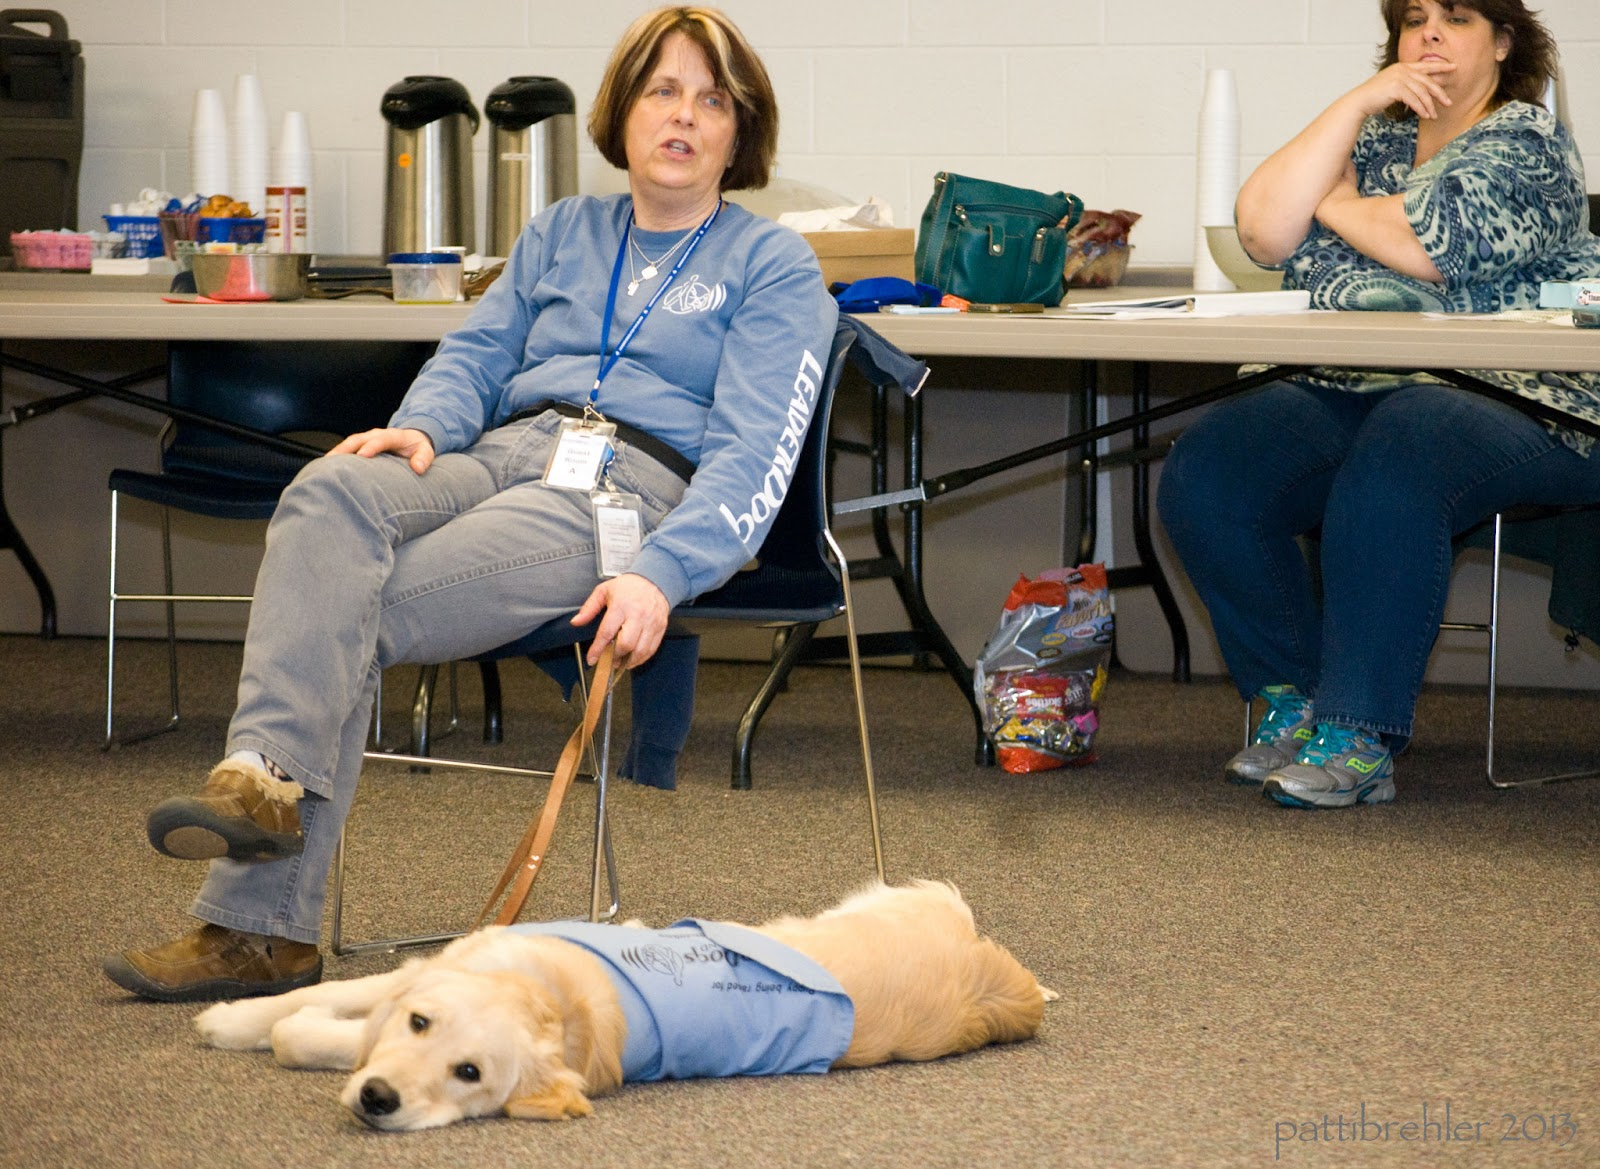 A golden retriever is lying flat on his side on a brown carpet, looking at the camera, he is wearing a baby blue jacket. A woman sitting on a chair behind the dog is holding a brown leash lightly in her left hand at her side. She is wearing a blue long sleeve t-shirt and gray pants. Her legs are crossed and her right hand is on her right thigh. she has short brown hair and is looking at the camera. Beihind the woman are two long folding tables with coffee thermoses on one. Another woman is sitting behind the table on the right, she is wearing a blue flowered shirt and blue jeans.She has her arms crossed with her right hand near her face.